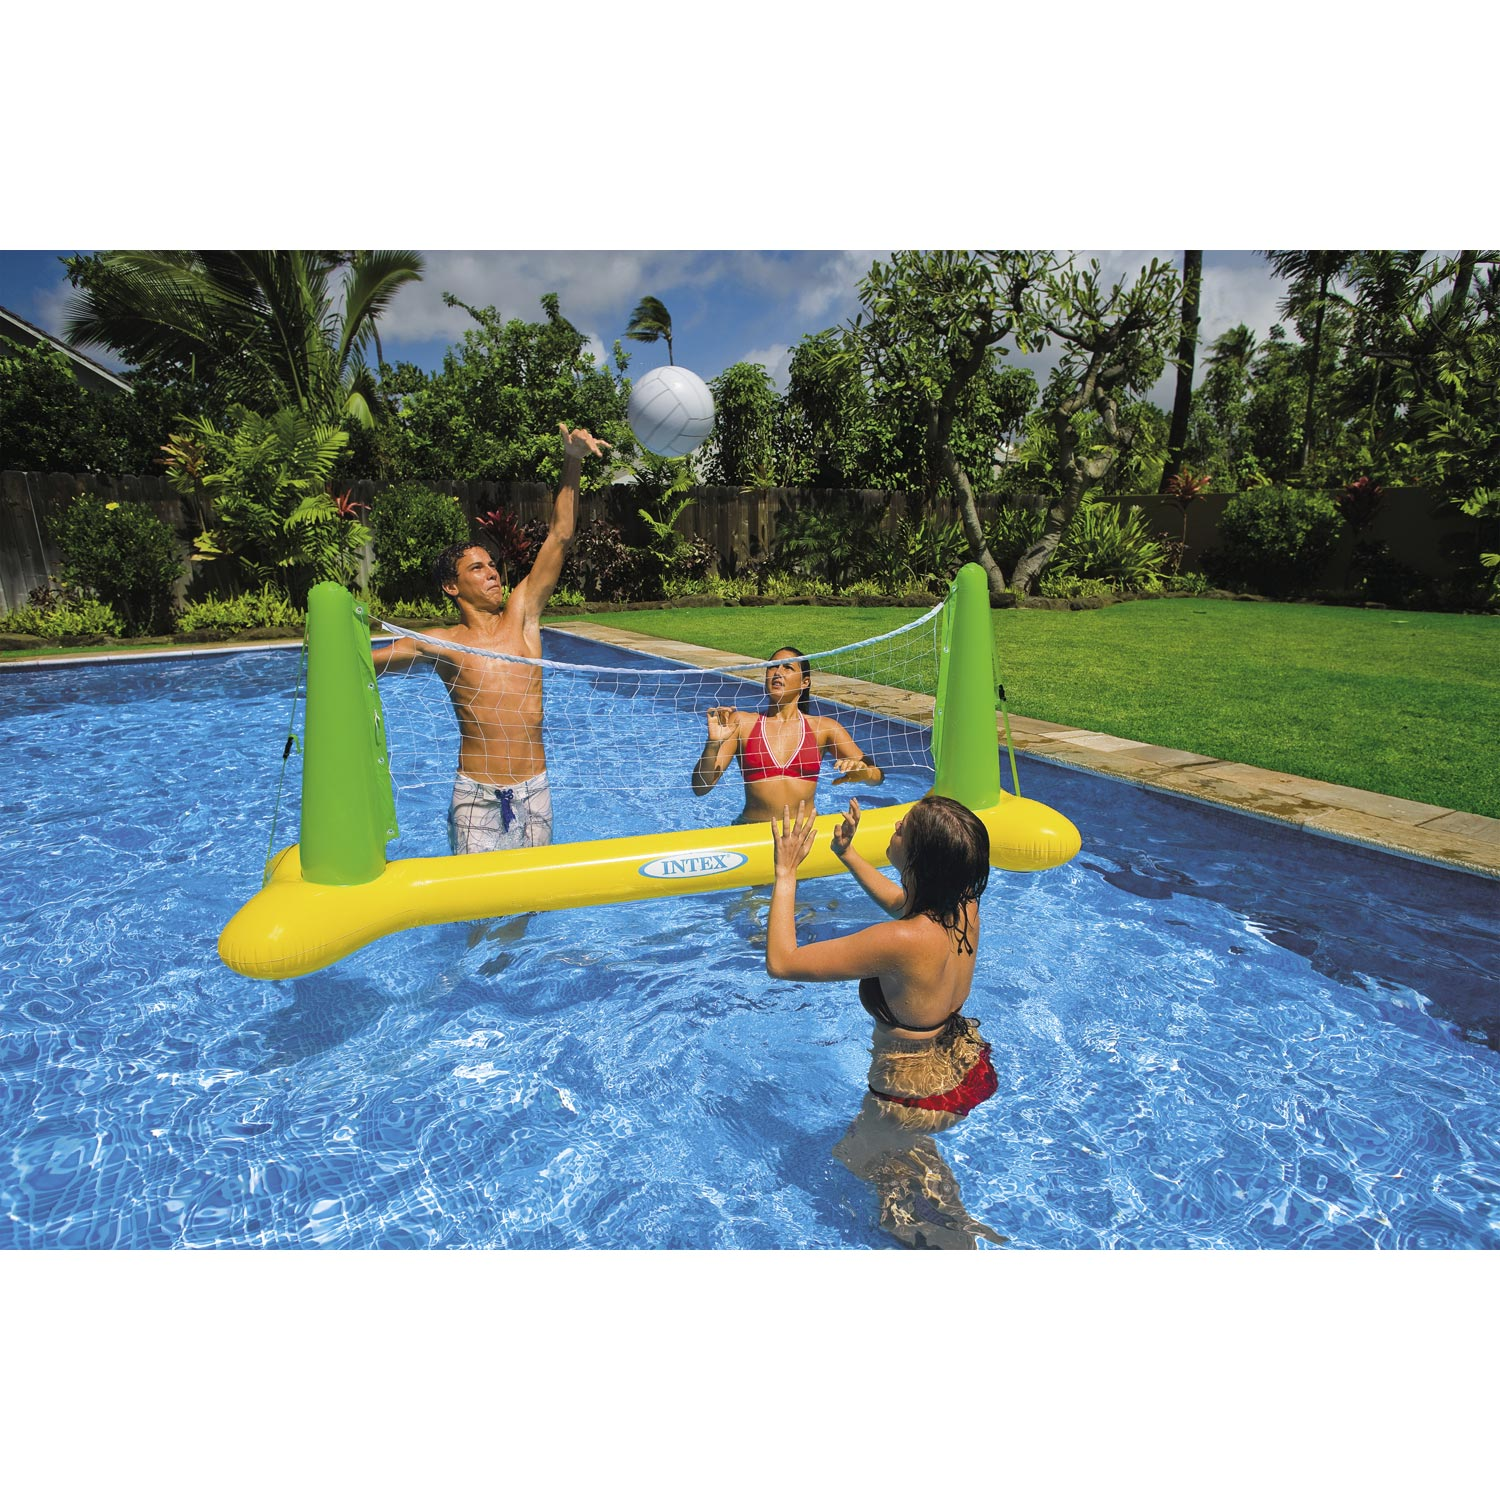 Jeu de volley de piscine intex leroy merlin for Piscine intex leroy merlin